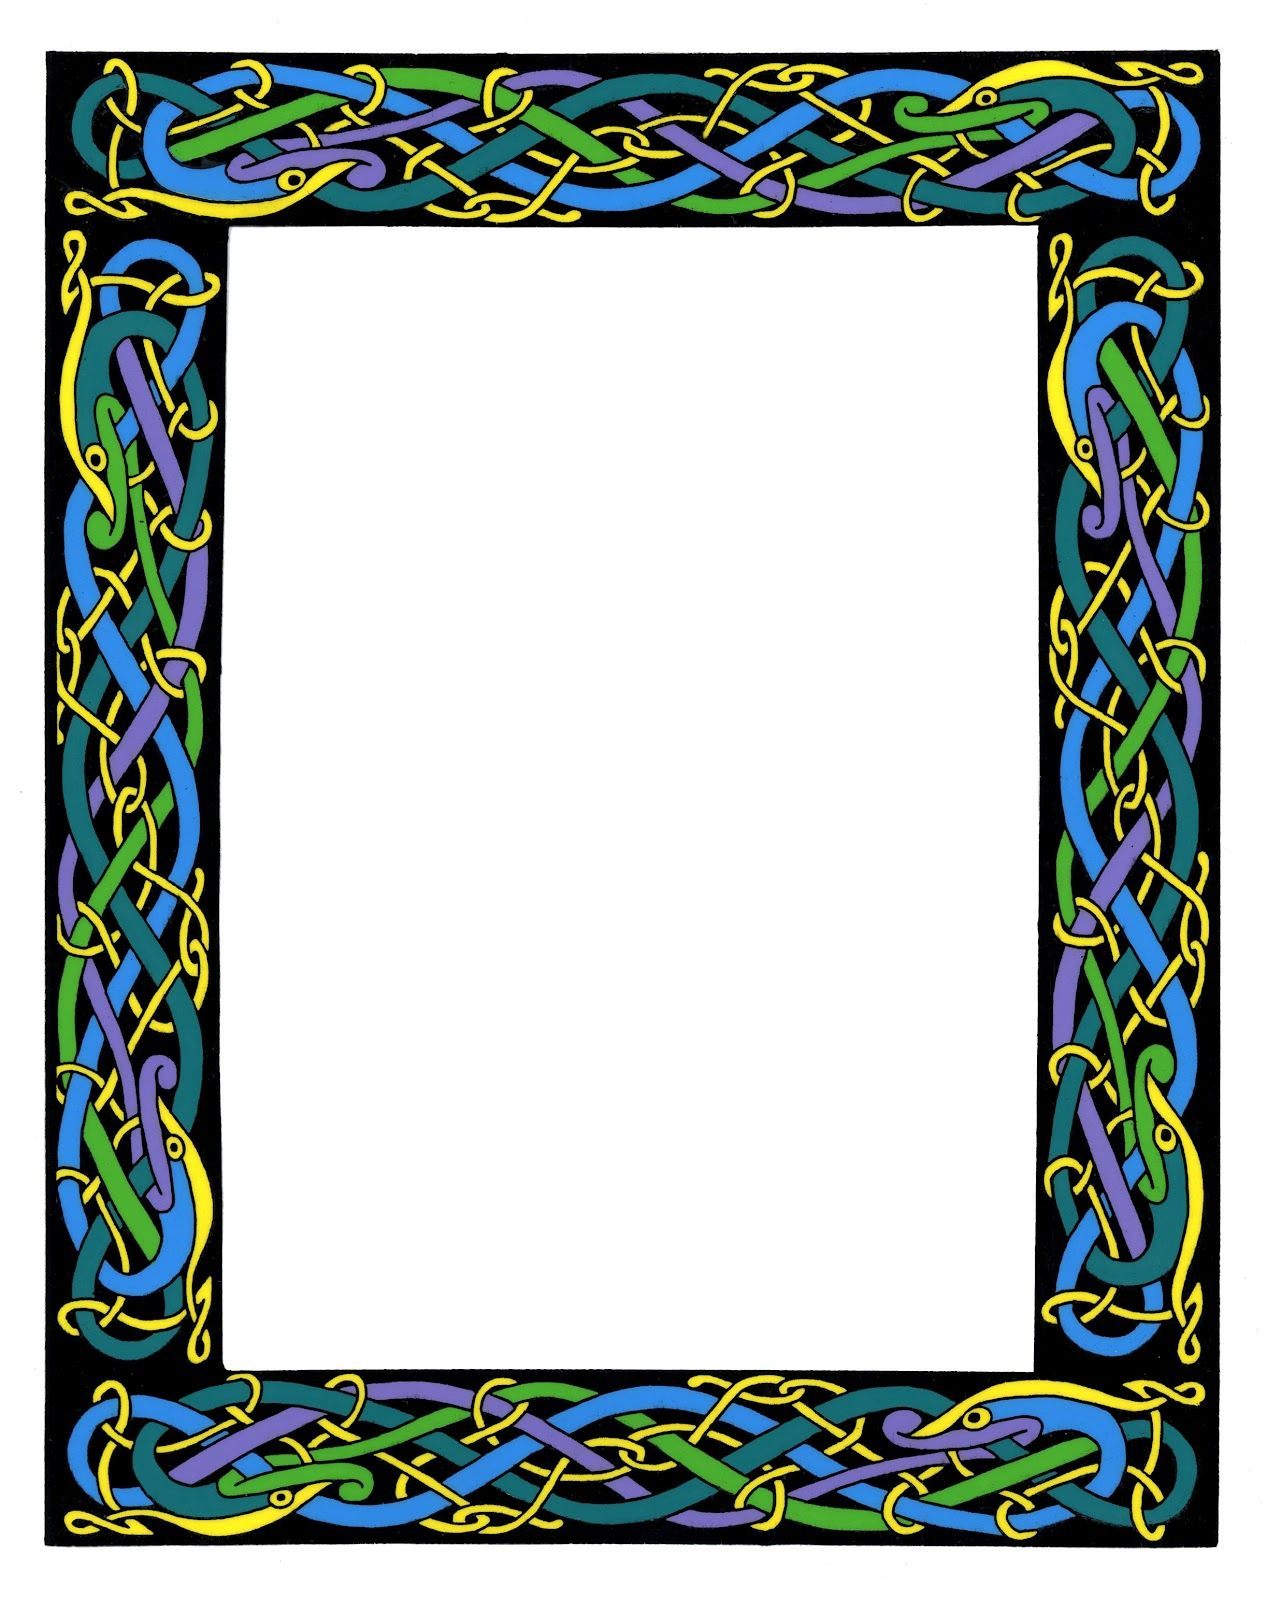 free celtic borders the best free library clipart wallpapers rh pinterest com free celtic clip art borders free celtic designs clip art